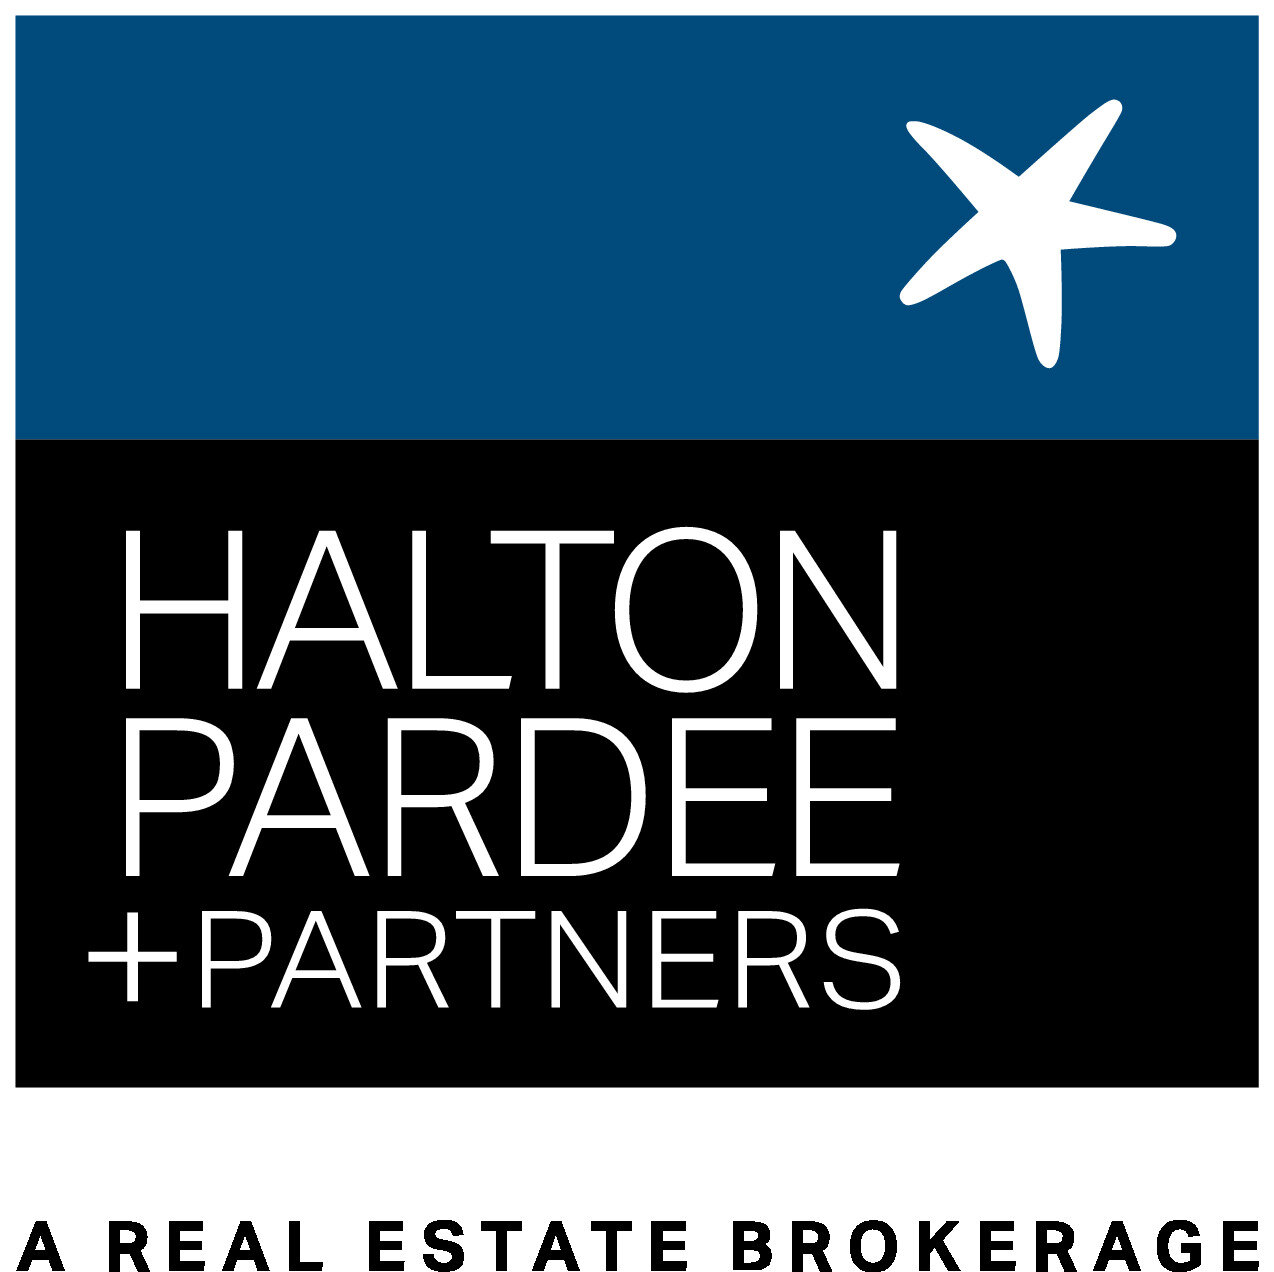 Halton_Pardee_+_Partners_Logo_FINAL1_BIG_CMYK_lockup_black.jpg